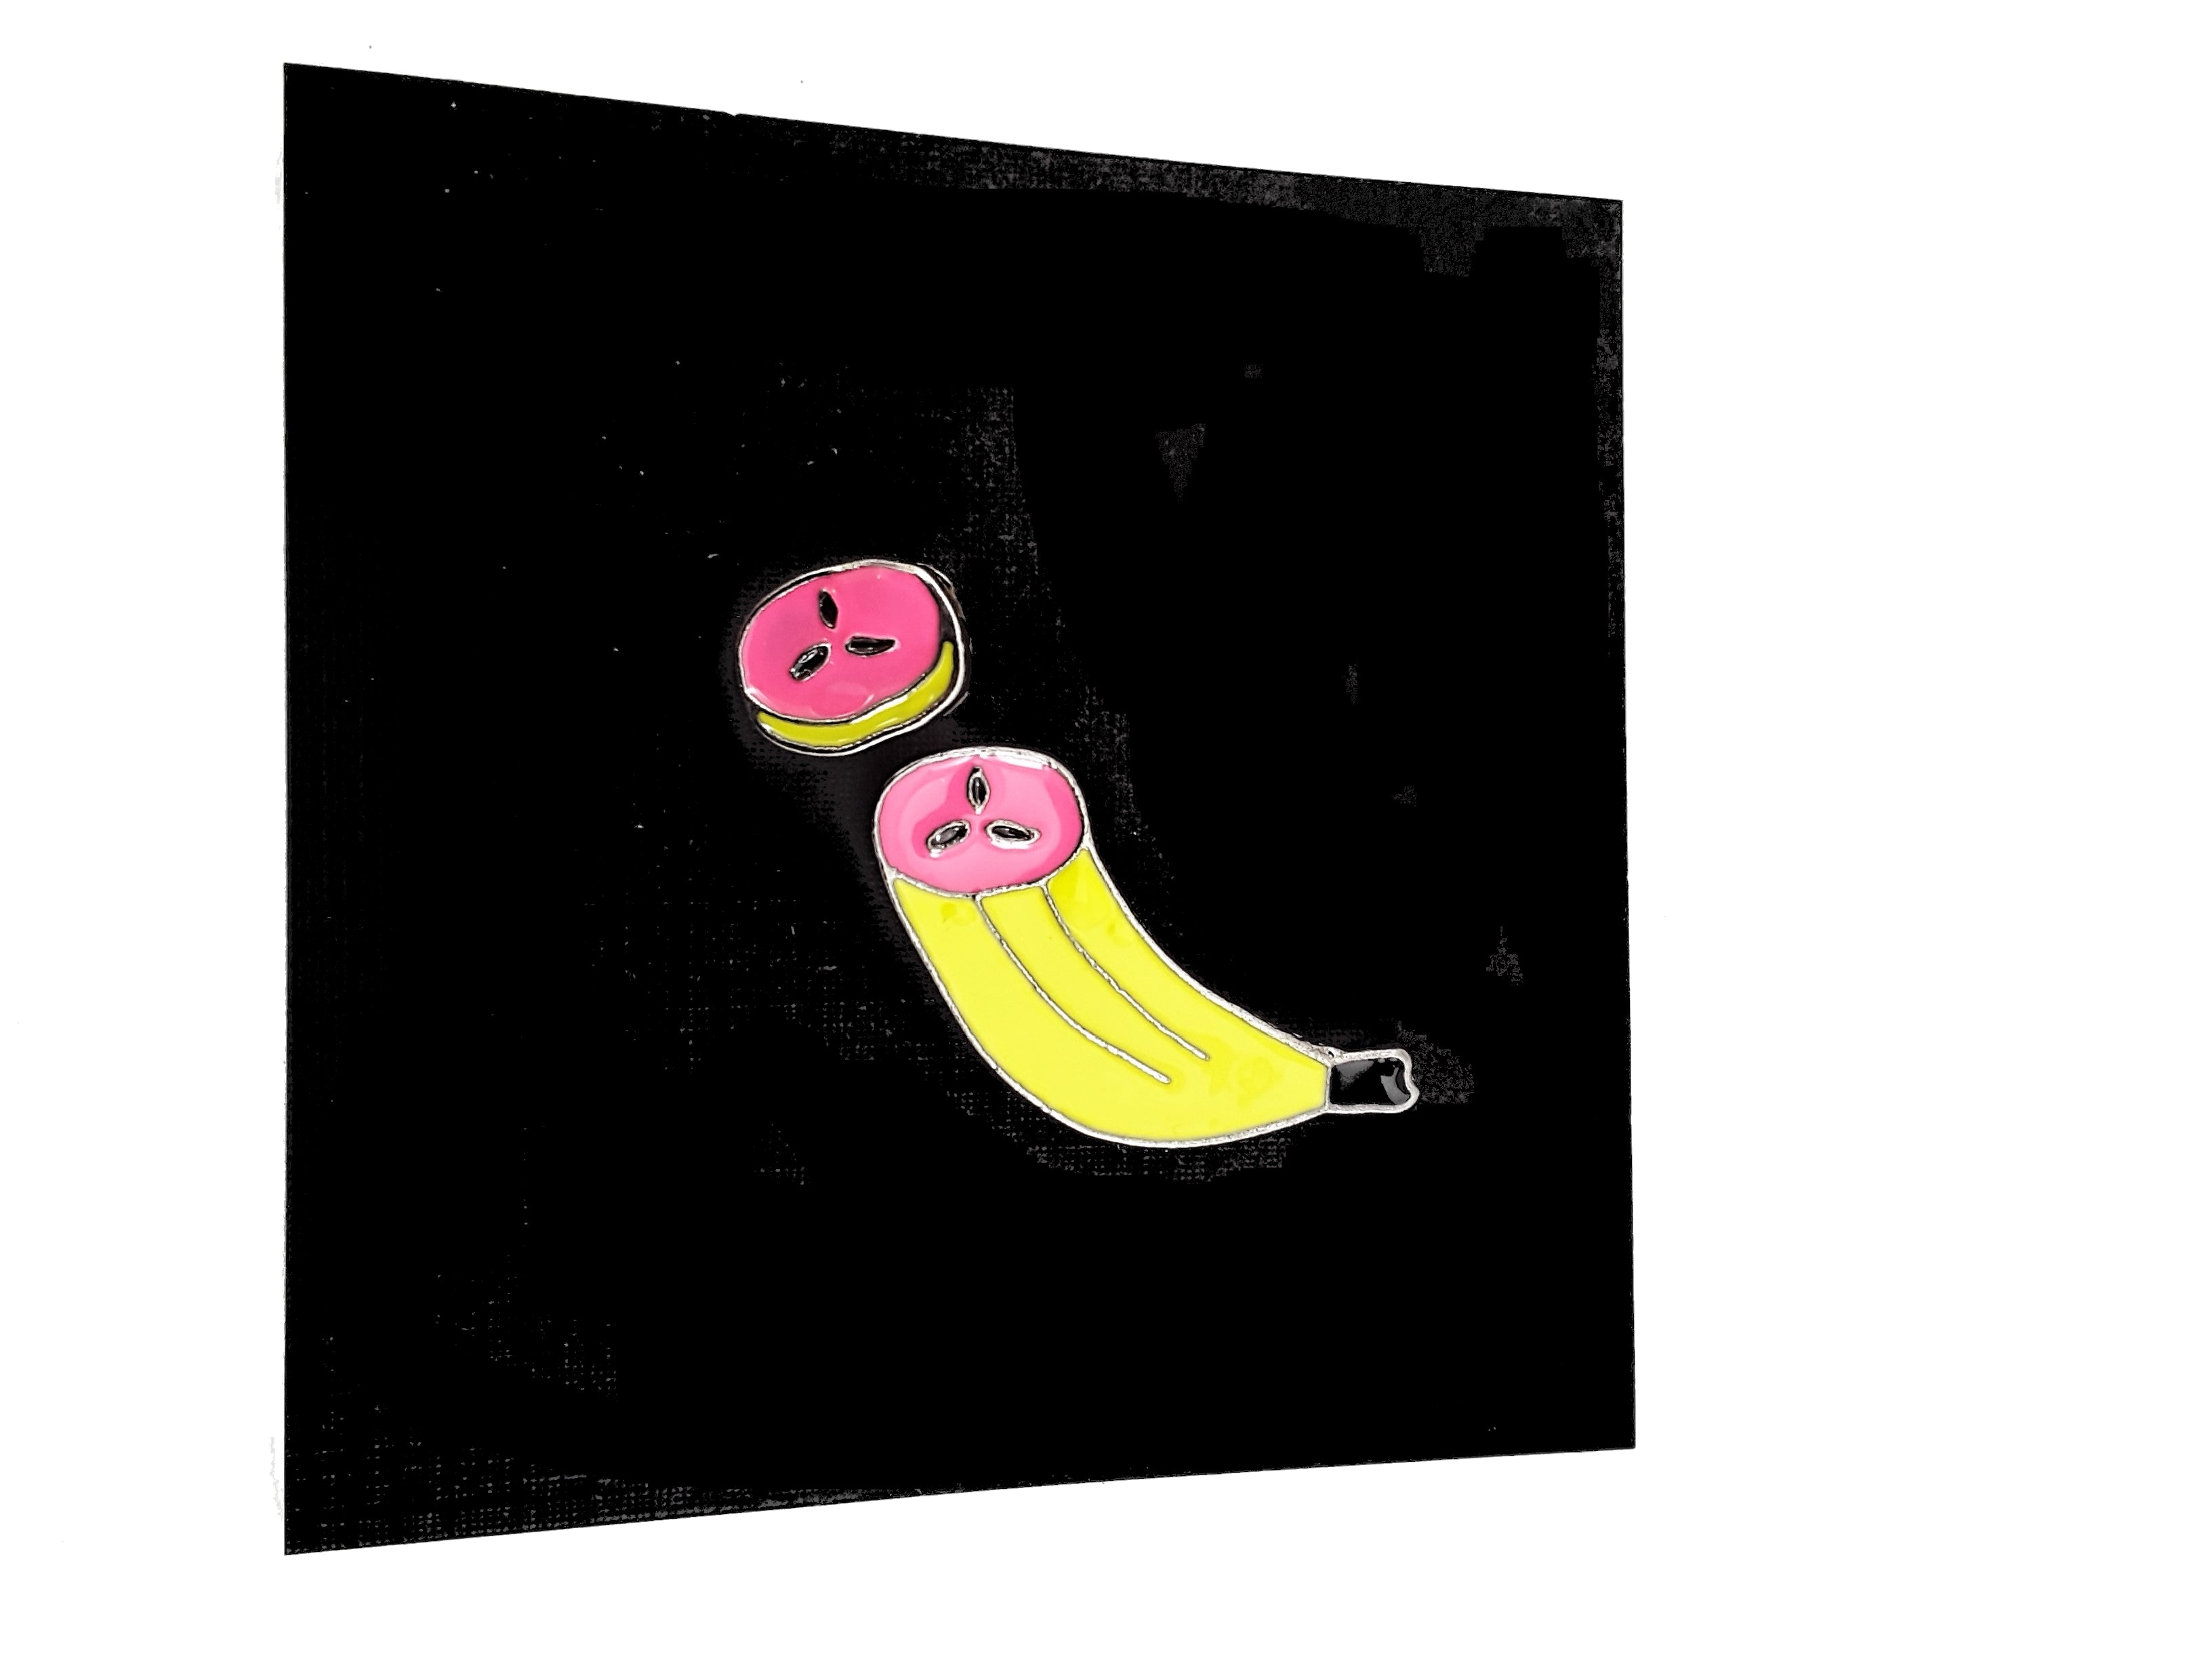 BANANA 2-PIECE ENAMEL PIN SET ON BLACK BACKGROUND